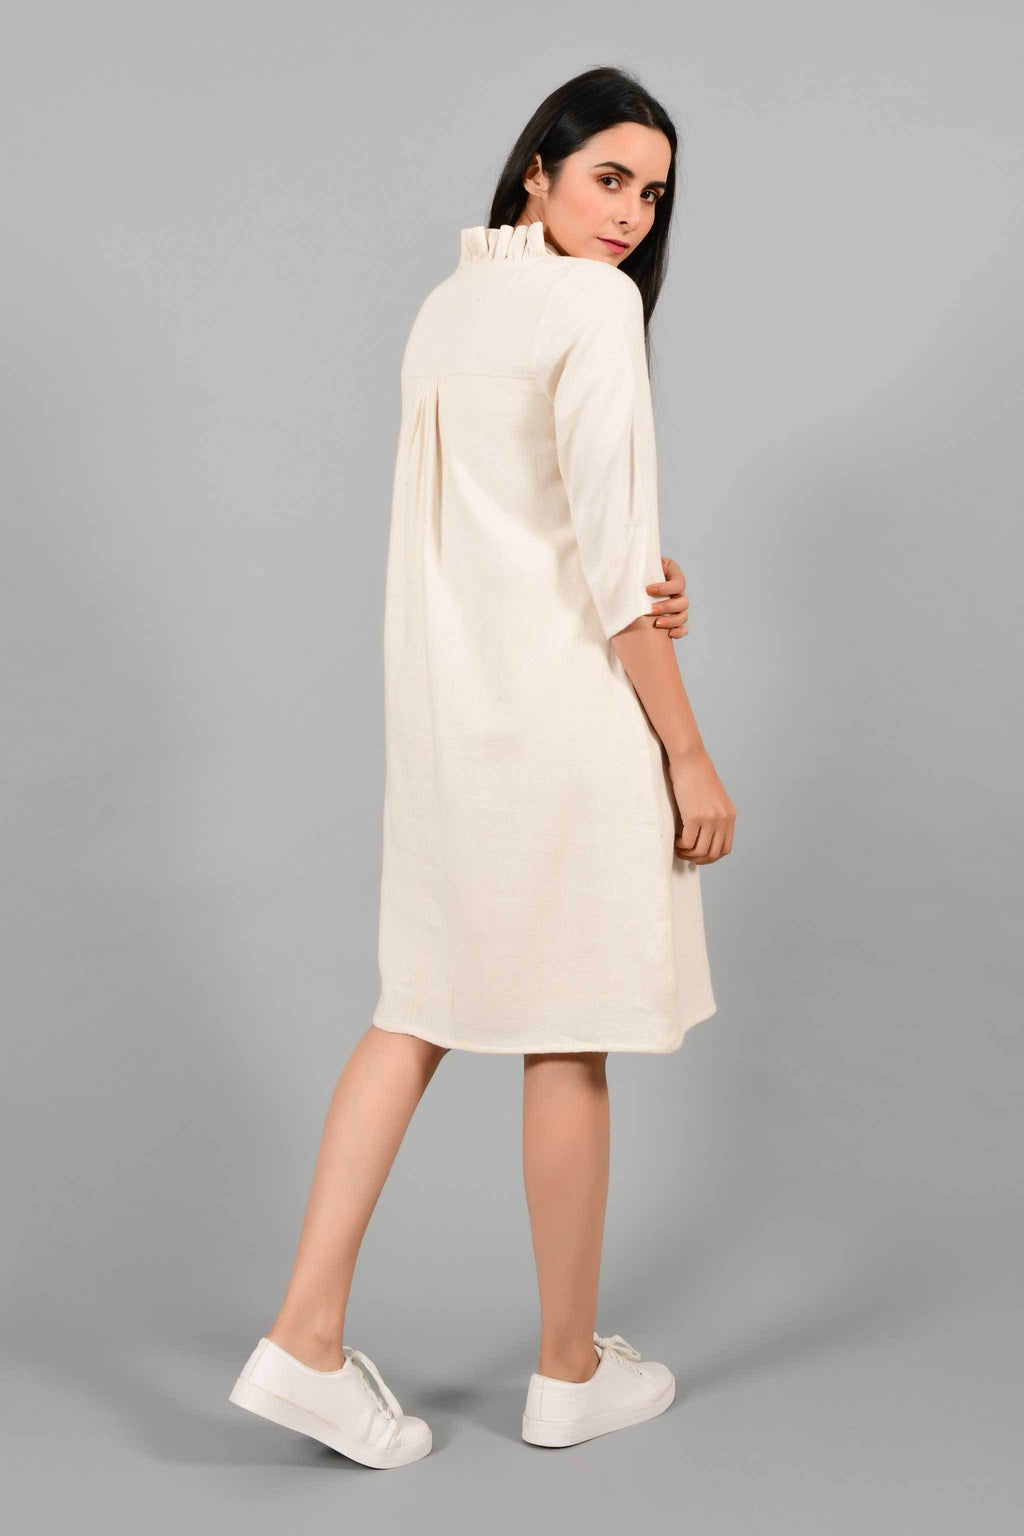 Back pose of an Indian female womenswear fashion model in an off-white Cashmere Cotton Dress with flared neck, made using handspun and handwoven khadi cotton by Cotton Rack.